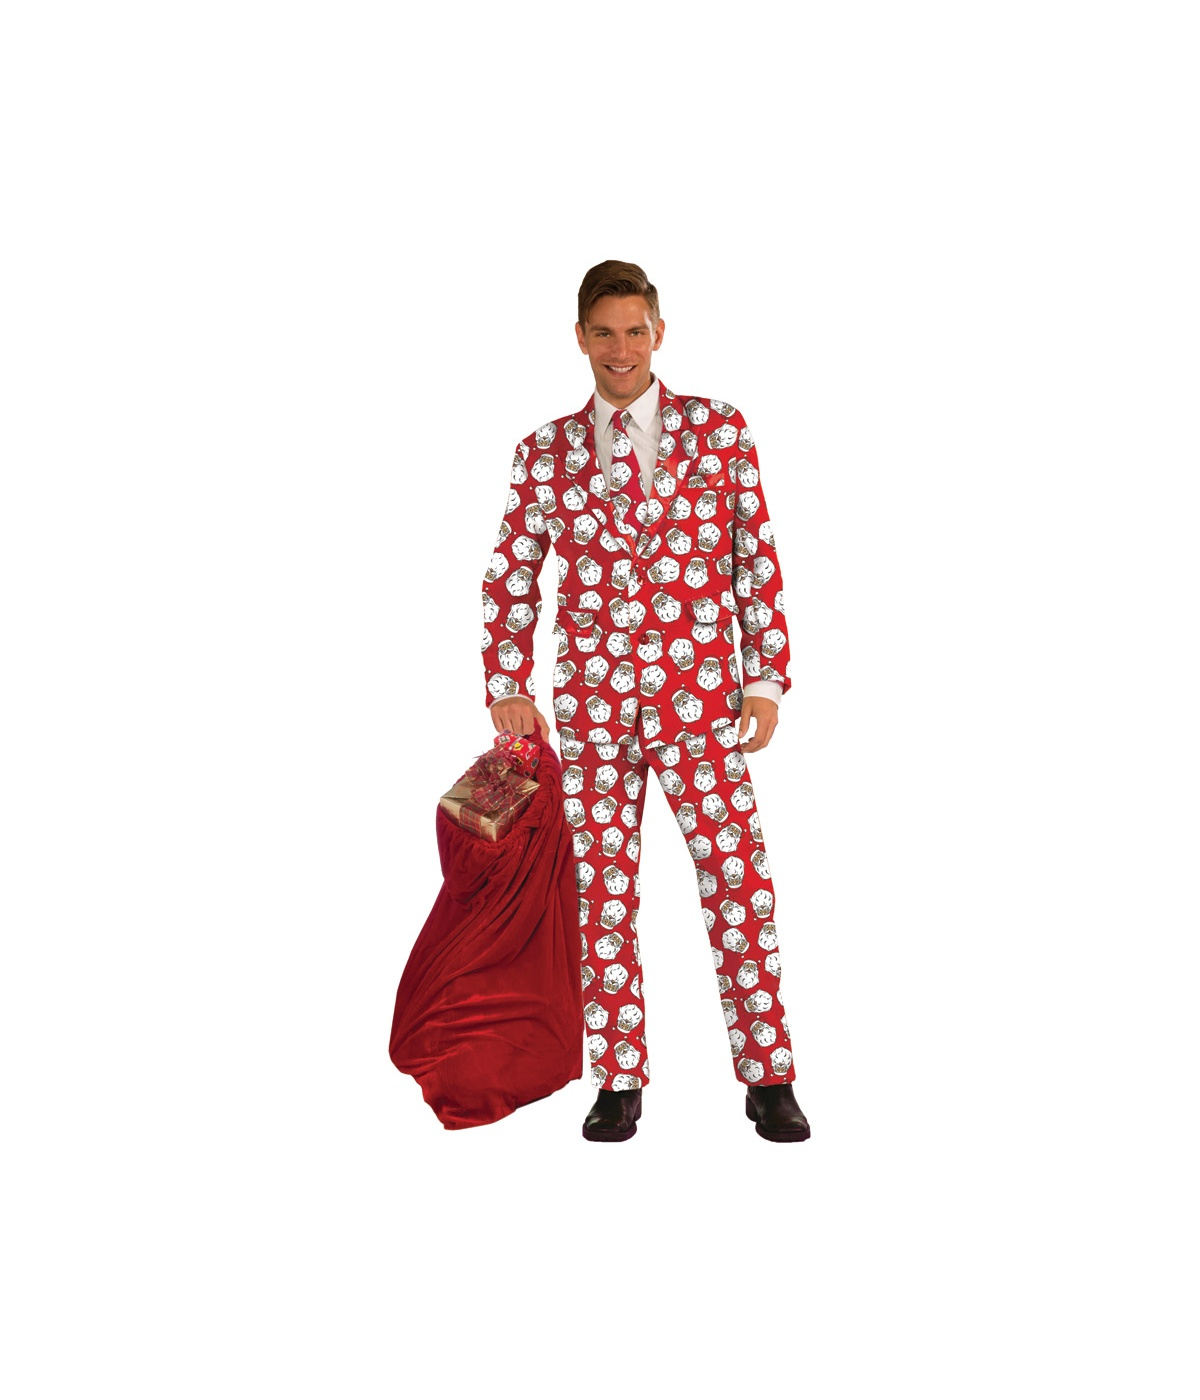 9ef800b6c2 Santa Claus Business Suit Costume - Christmas Costumes